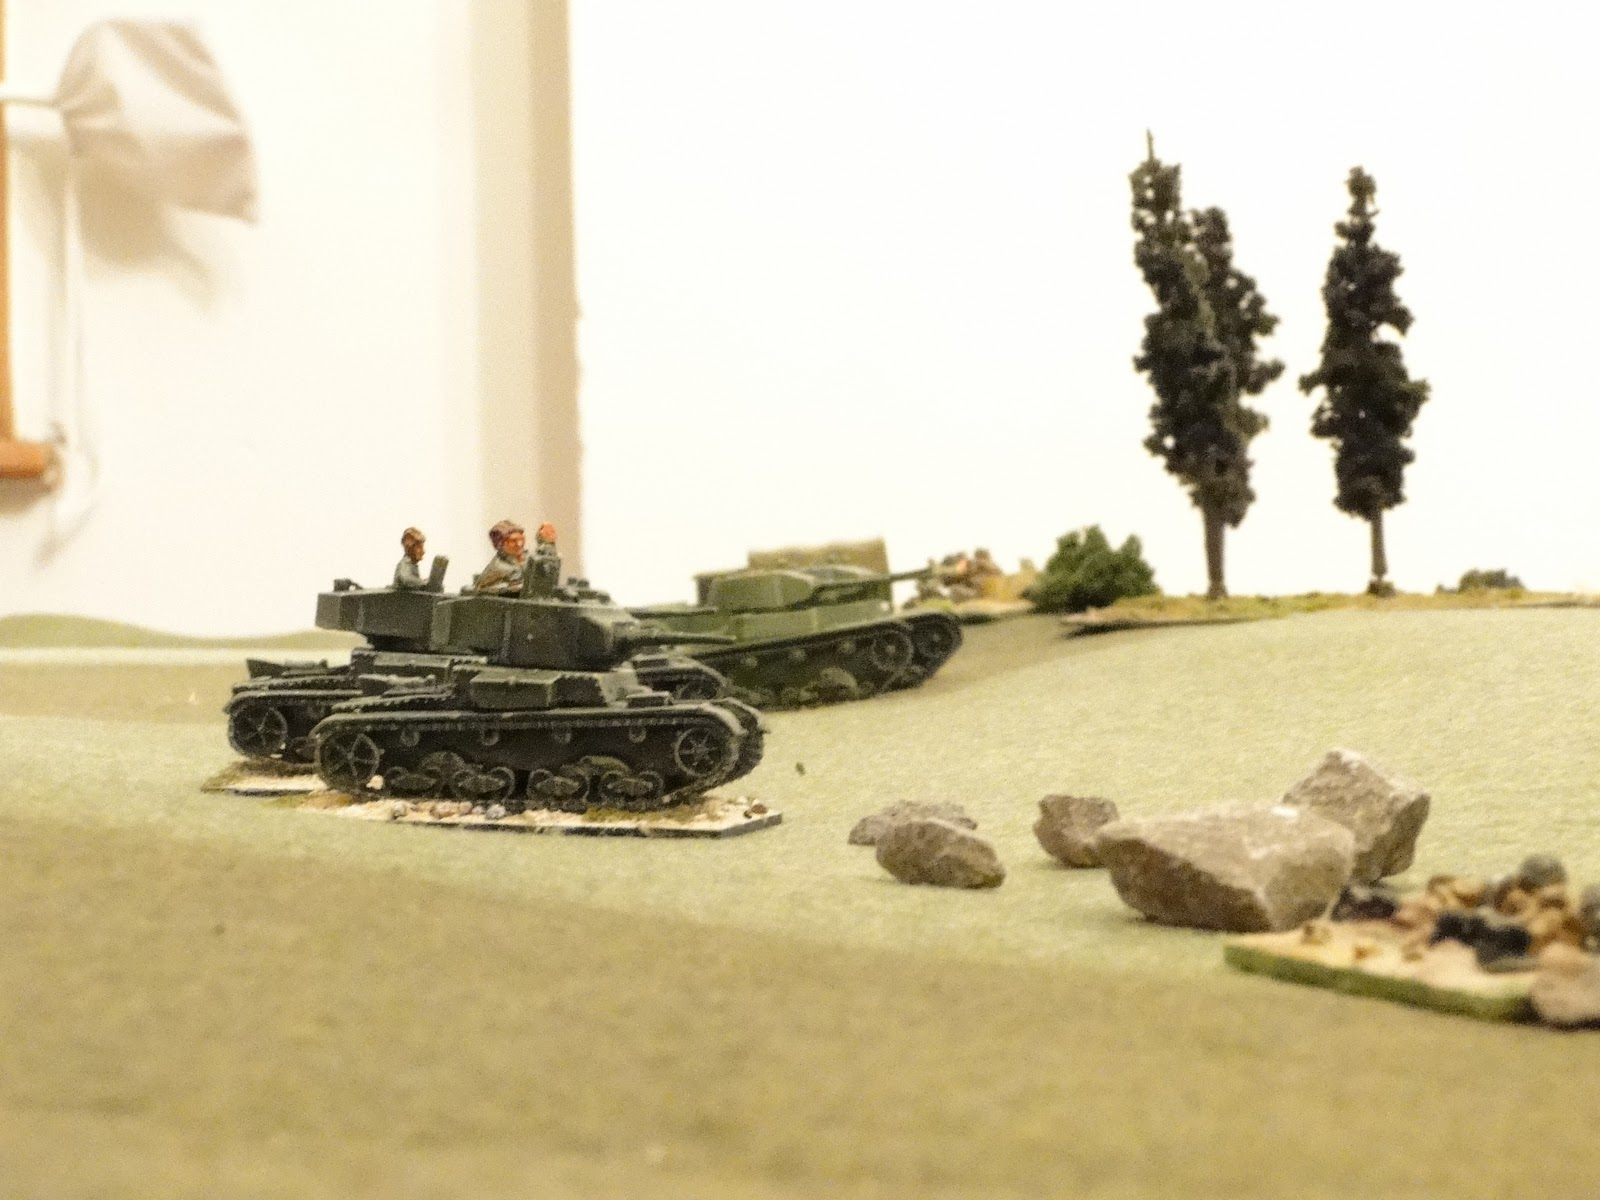 With no Big Men to rally them the T26s tactics are to hold their position and fire from hull down positions.